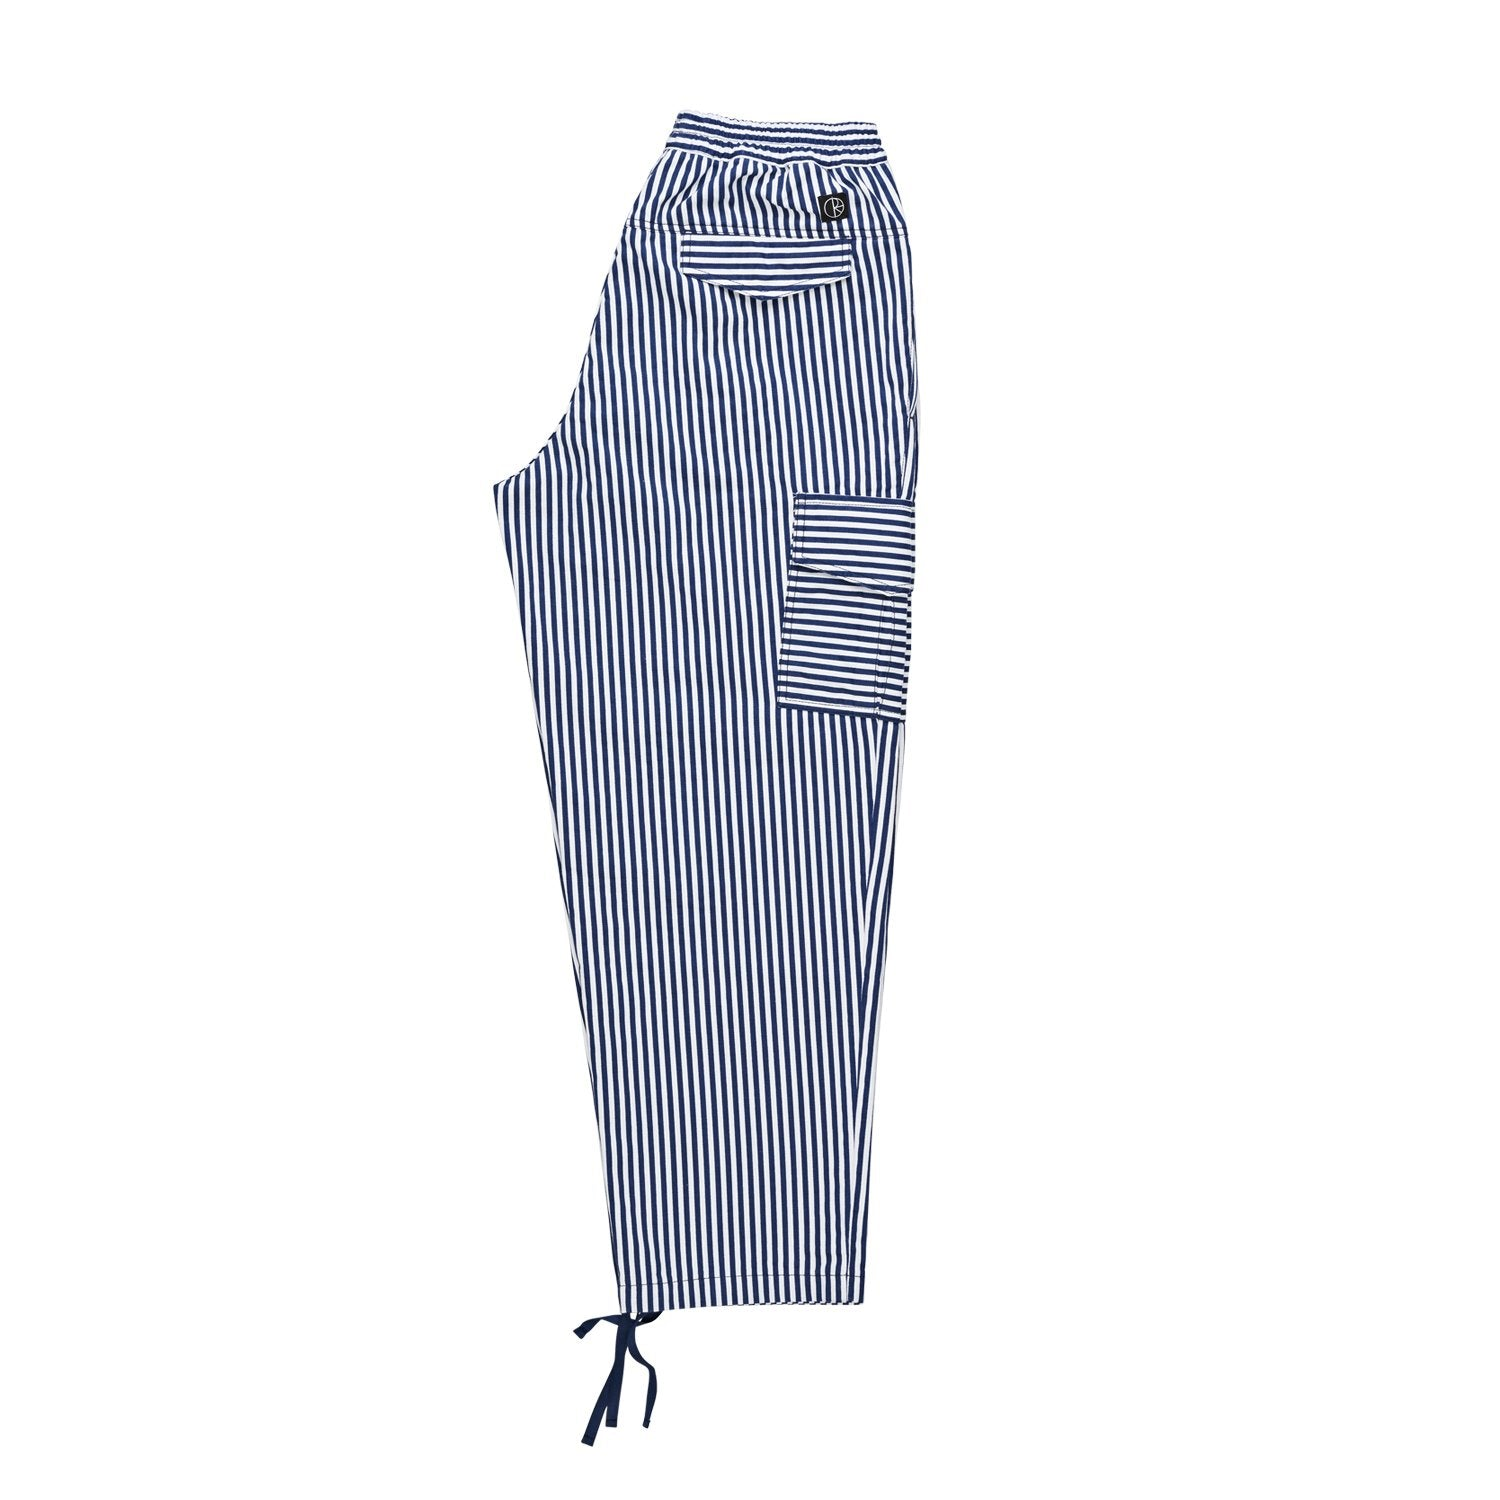 POLAR STRIPED CARGO PANTS - NAVY/WHITE